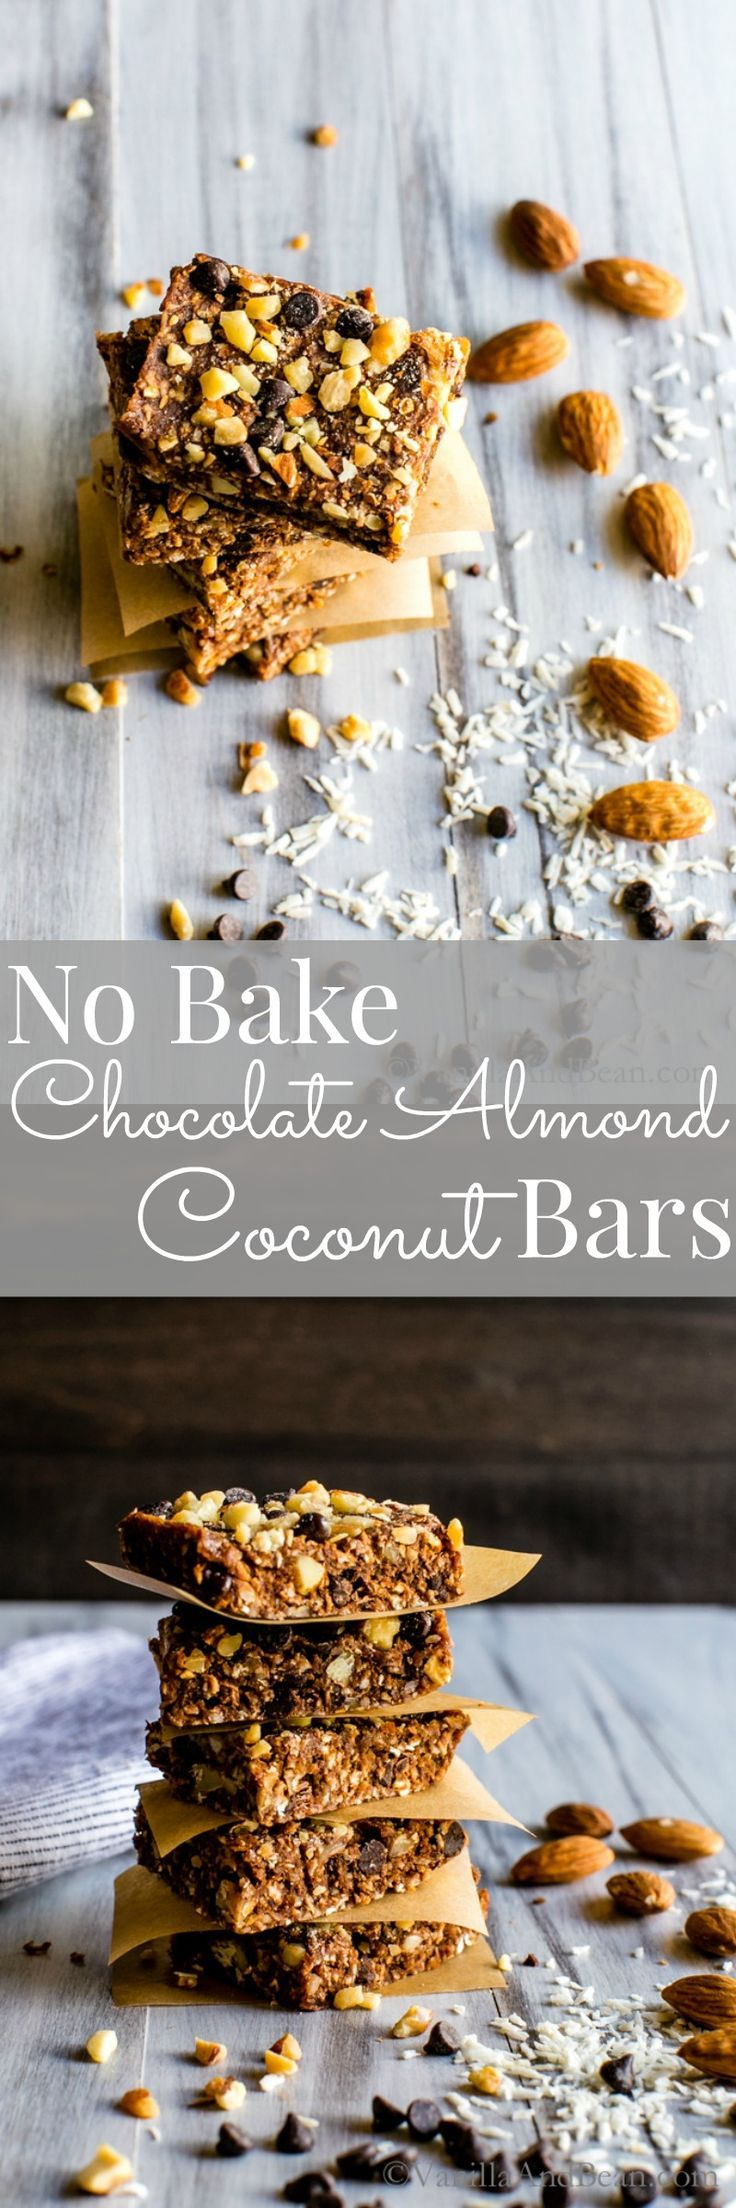 No Bake Vegan Chocolate Almond Coconut Bars from my newly released ebook…